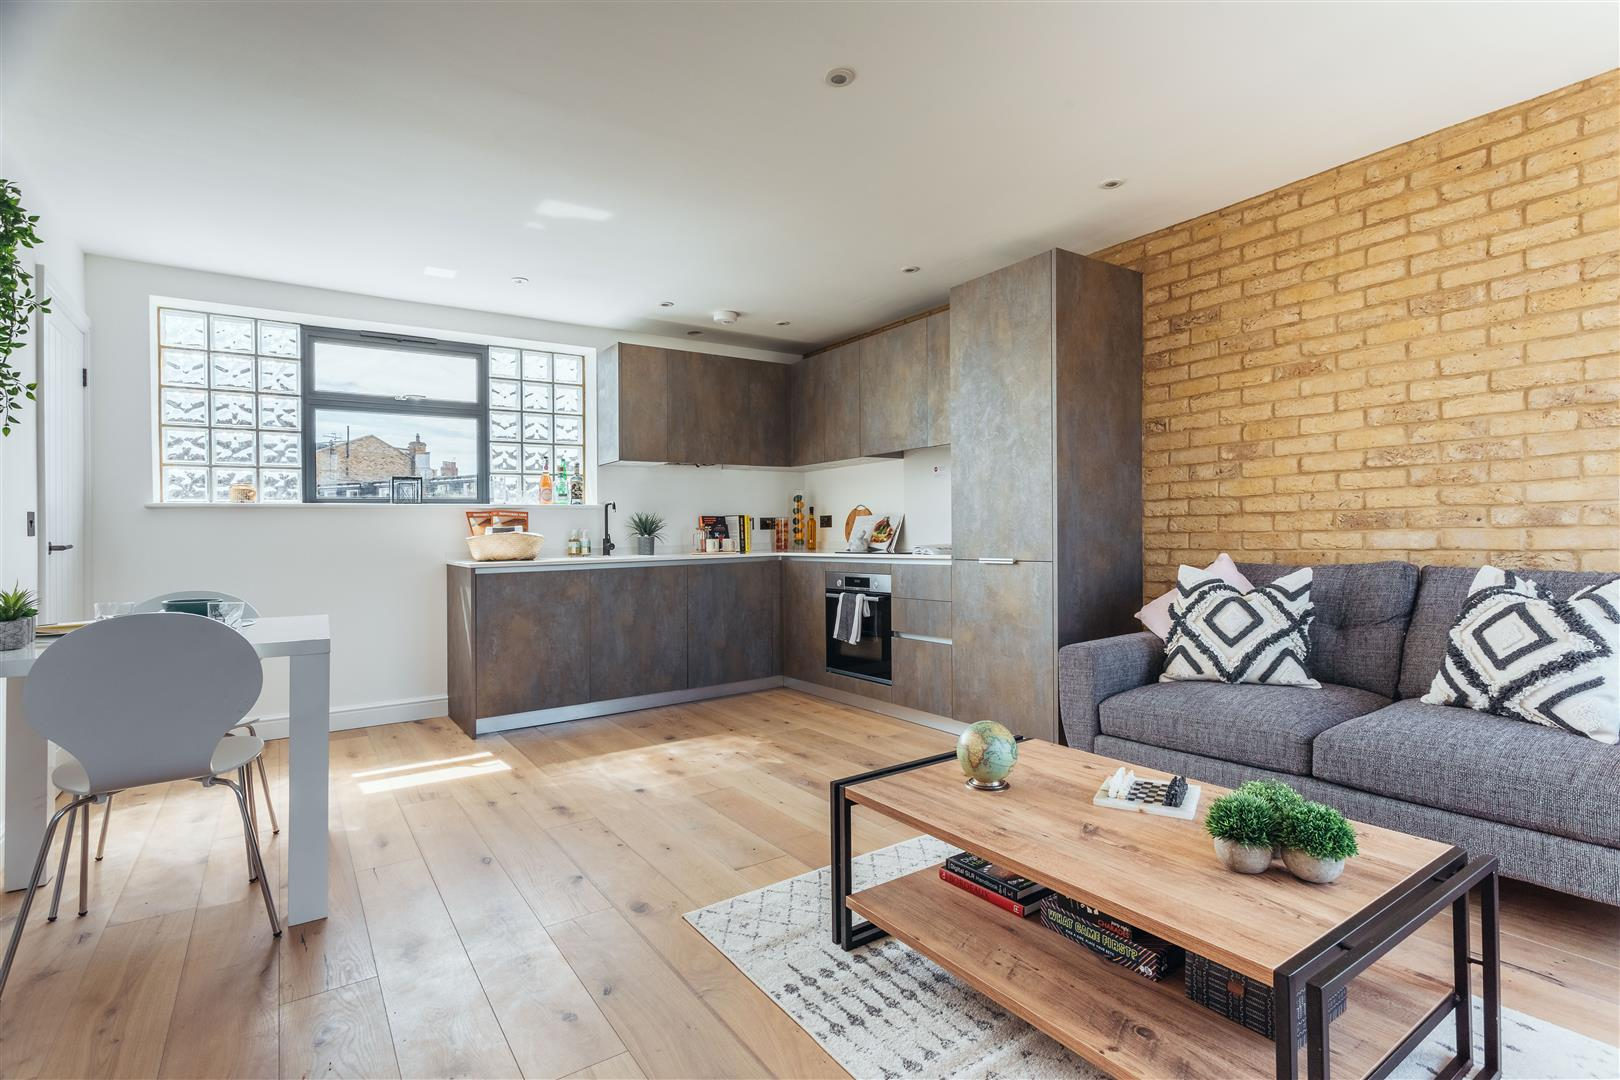 The Living Room of a 1 Bed Maisonette Currently For Sale in the Creatively Imagined Ironworks Yard, Sold by Davies & Davies Estate Agents.